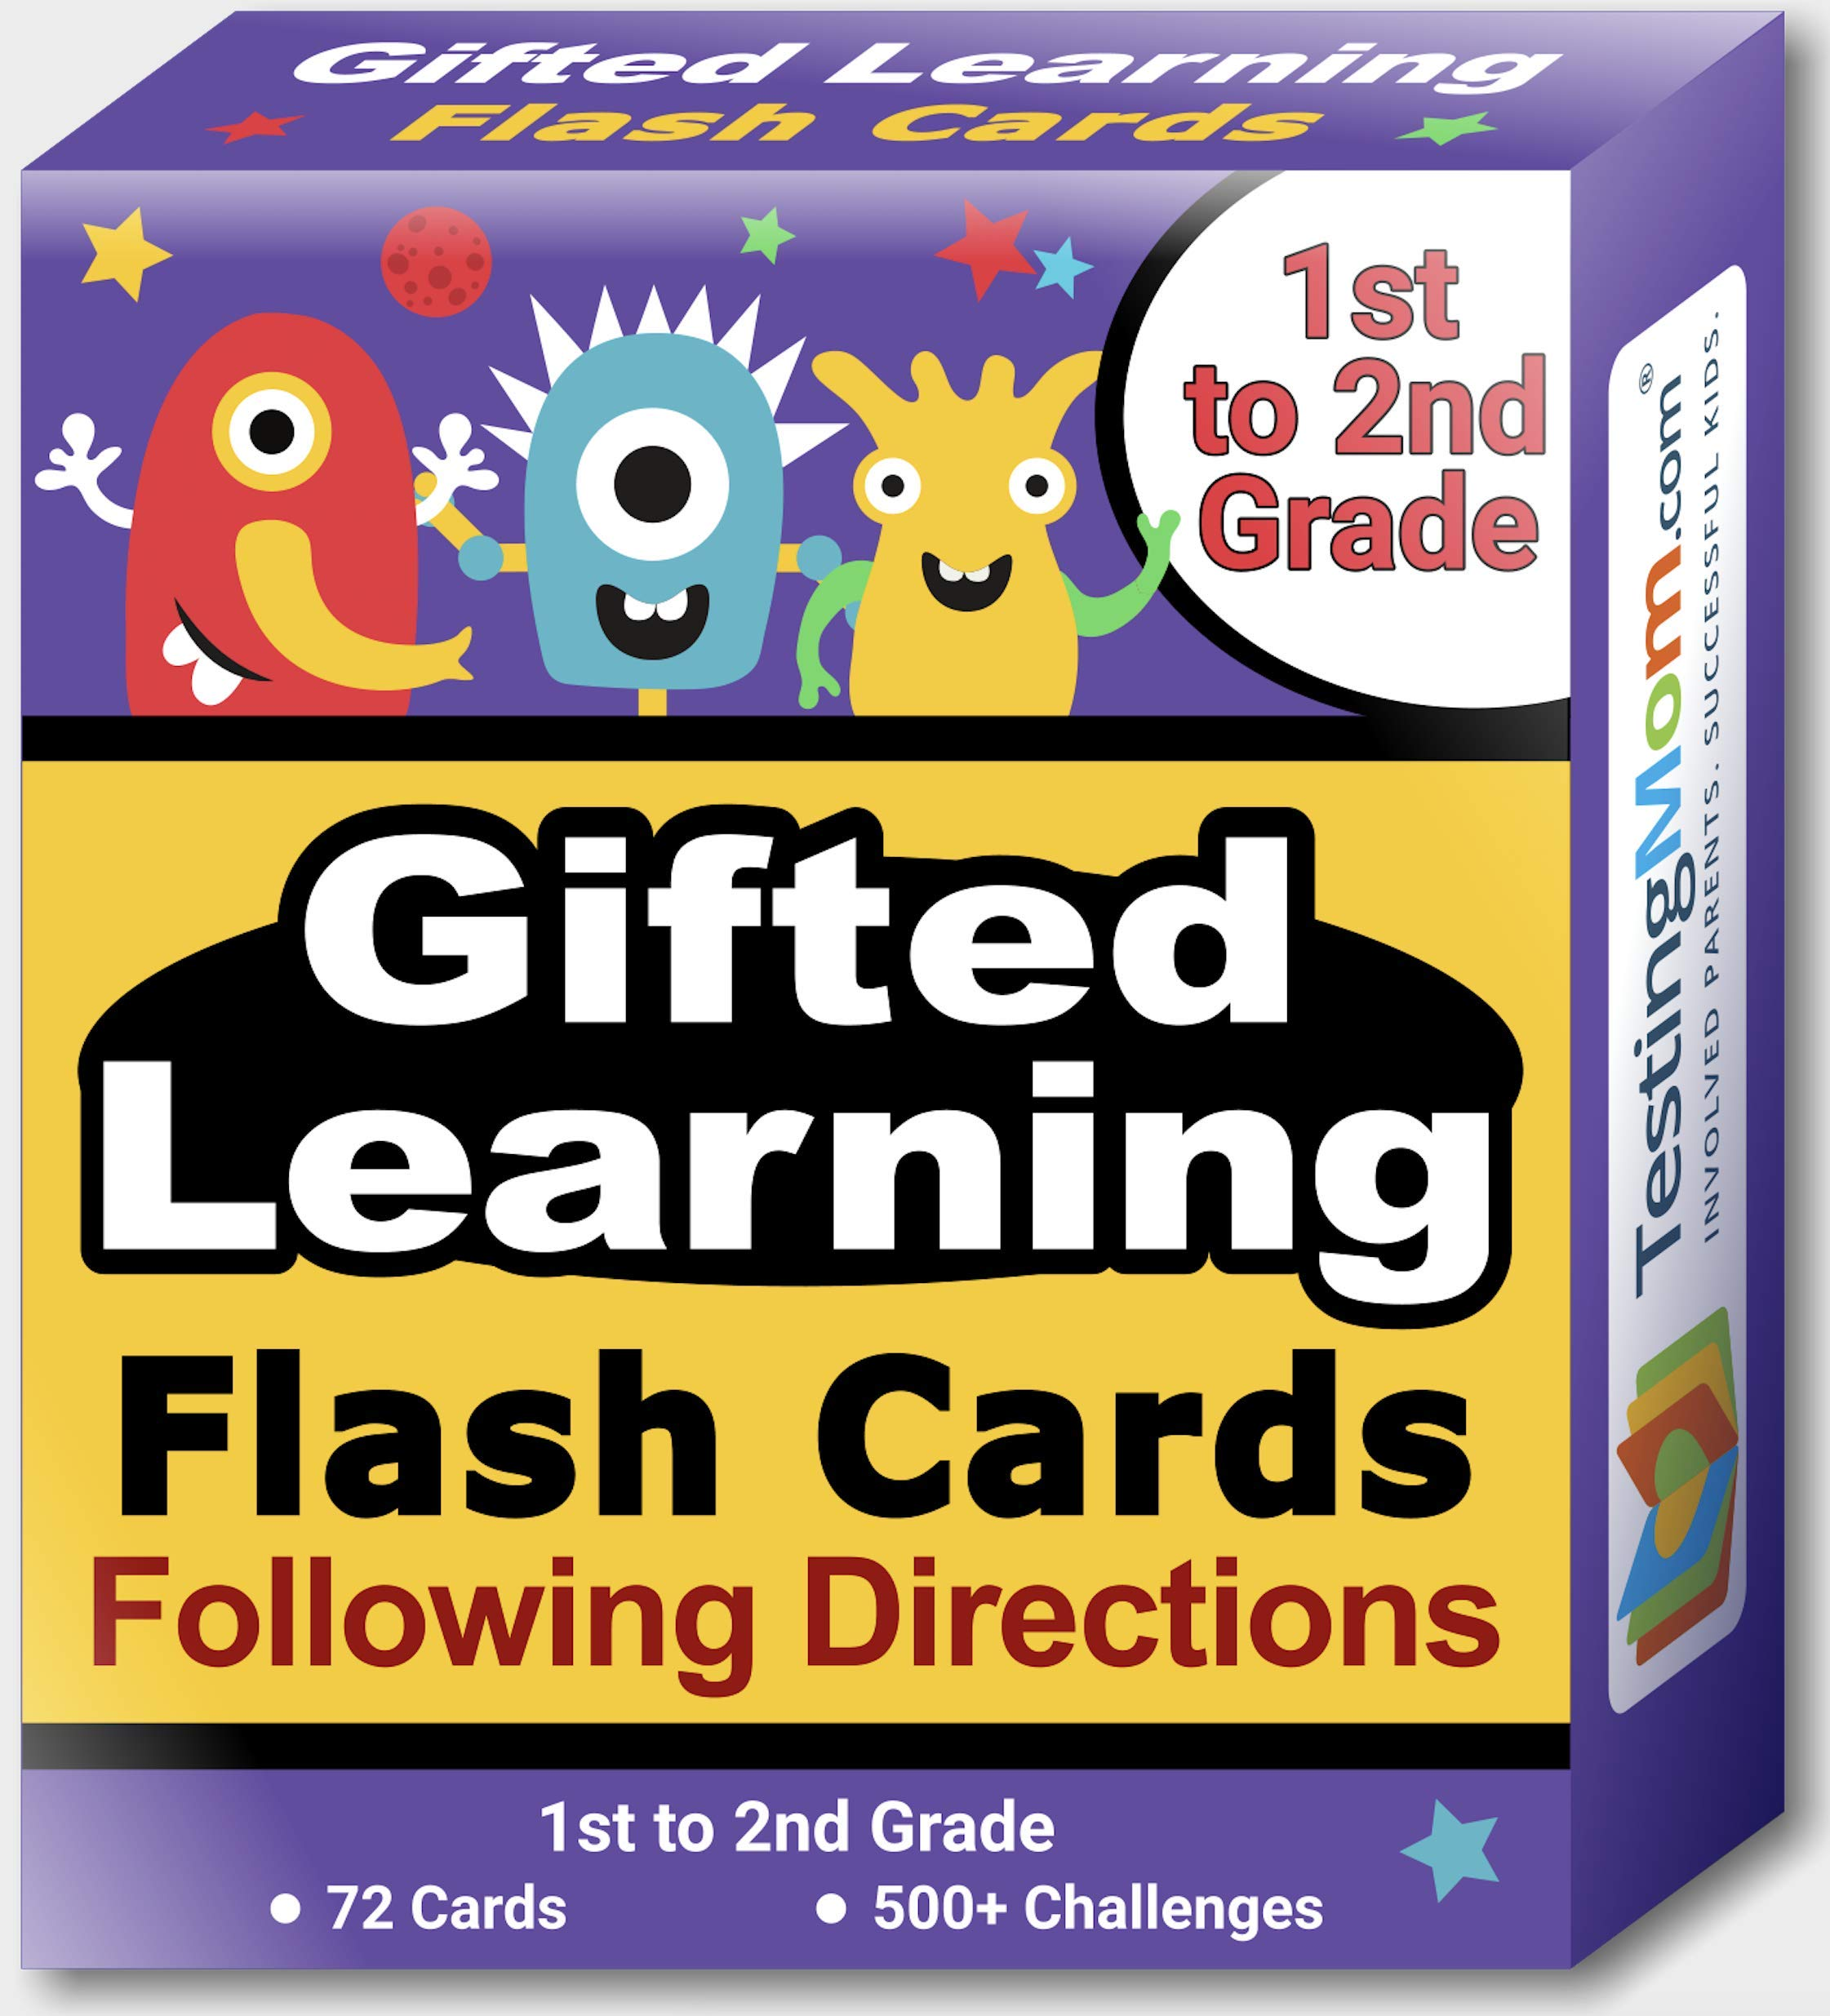 TestingMom.com Gifted Learning Flash Cards - Following Directions for Grade 1-2 - Educational Practice for CogAT Test, OLSAT Test, ITBS, NYC Gifted and Talented, WISC, WPPSI by TestingMom.com